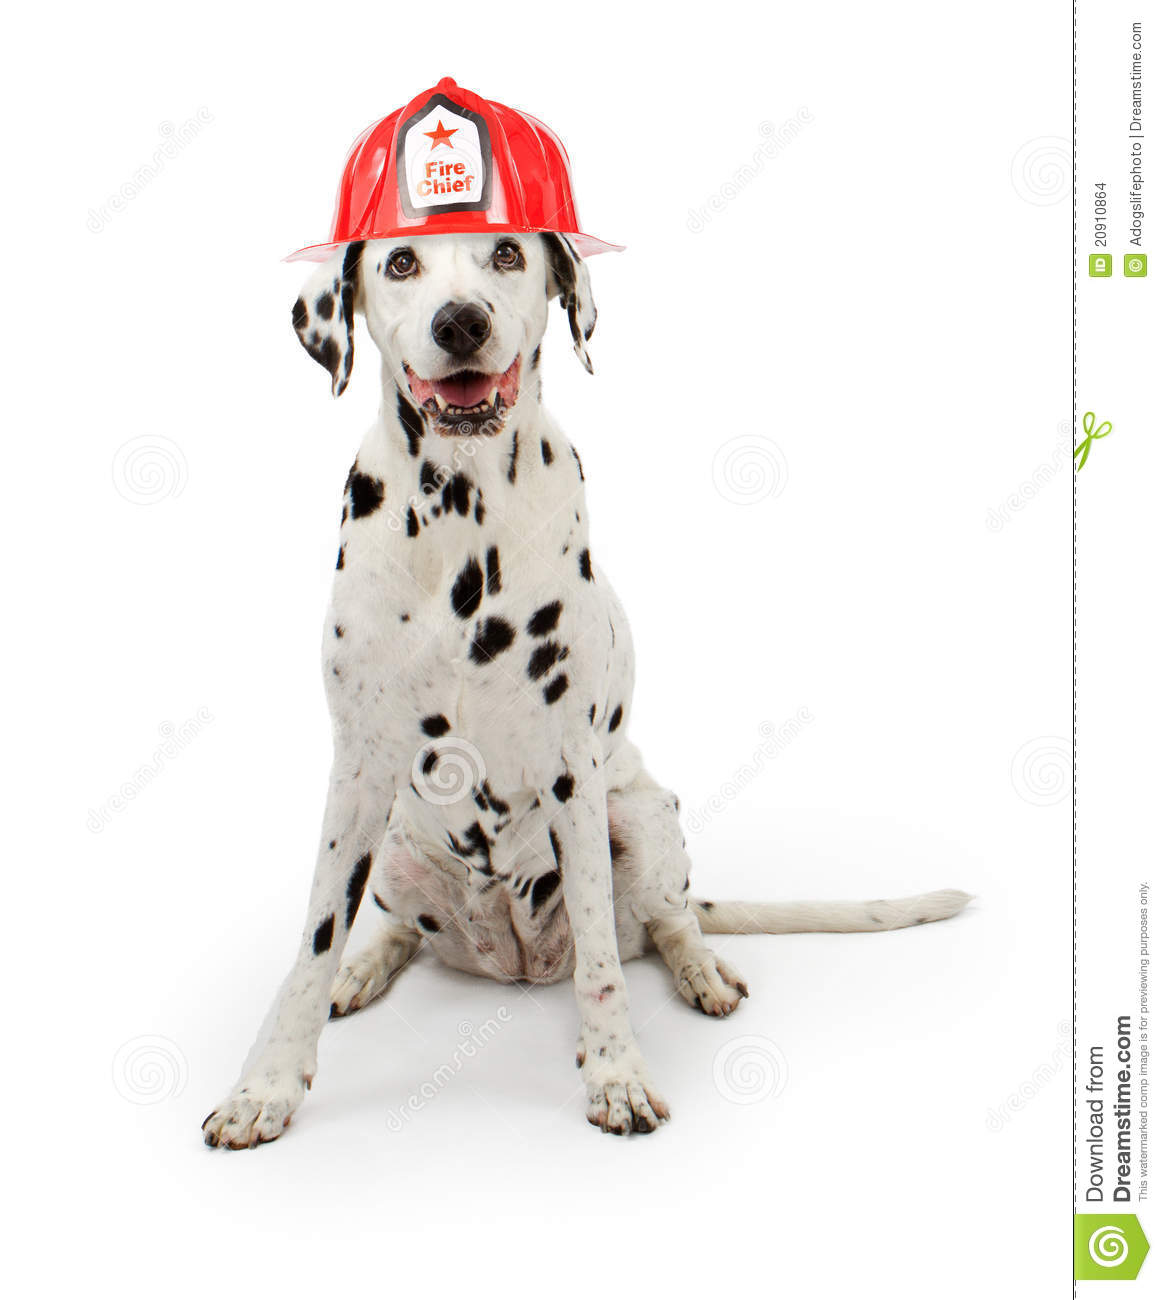 Dalmation Dog Wearing A Red Fireman Hat Stock Images - Image: 20910864